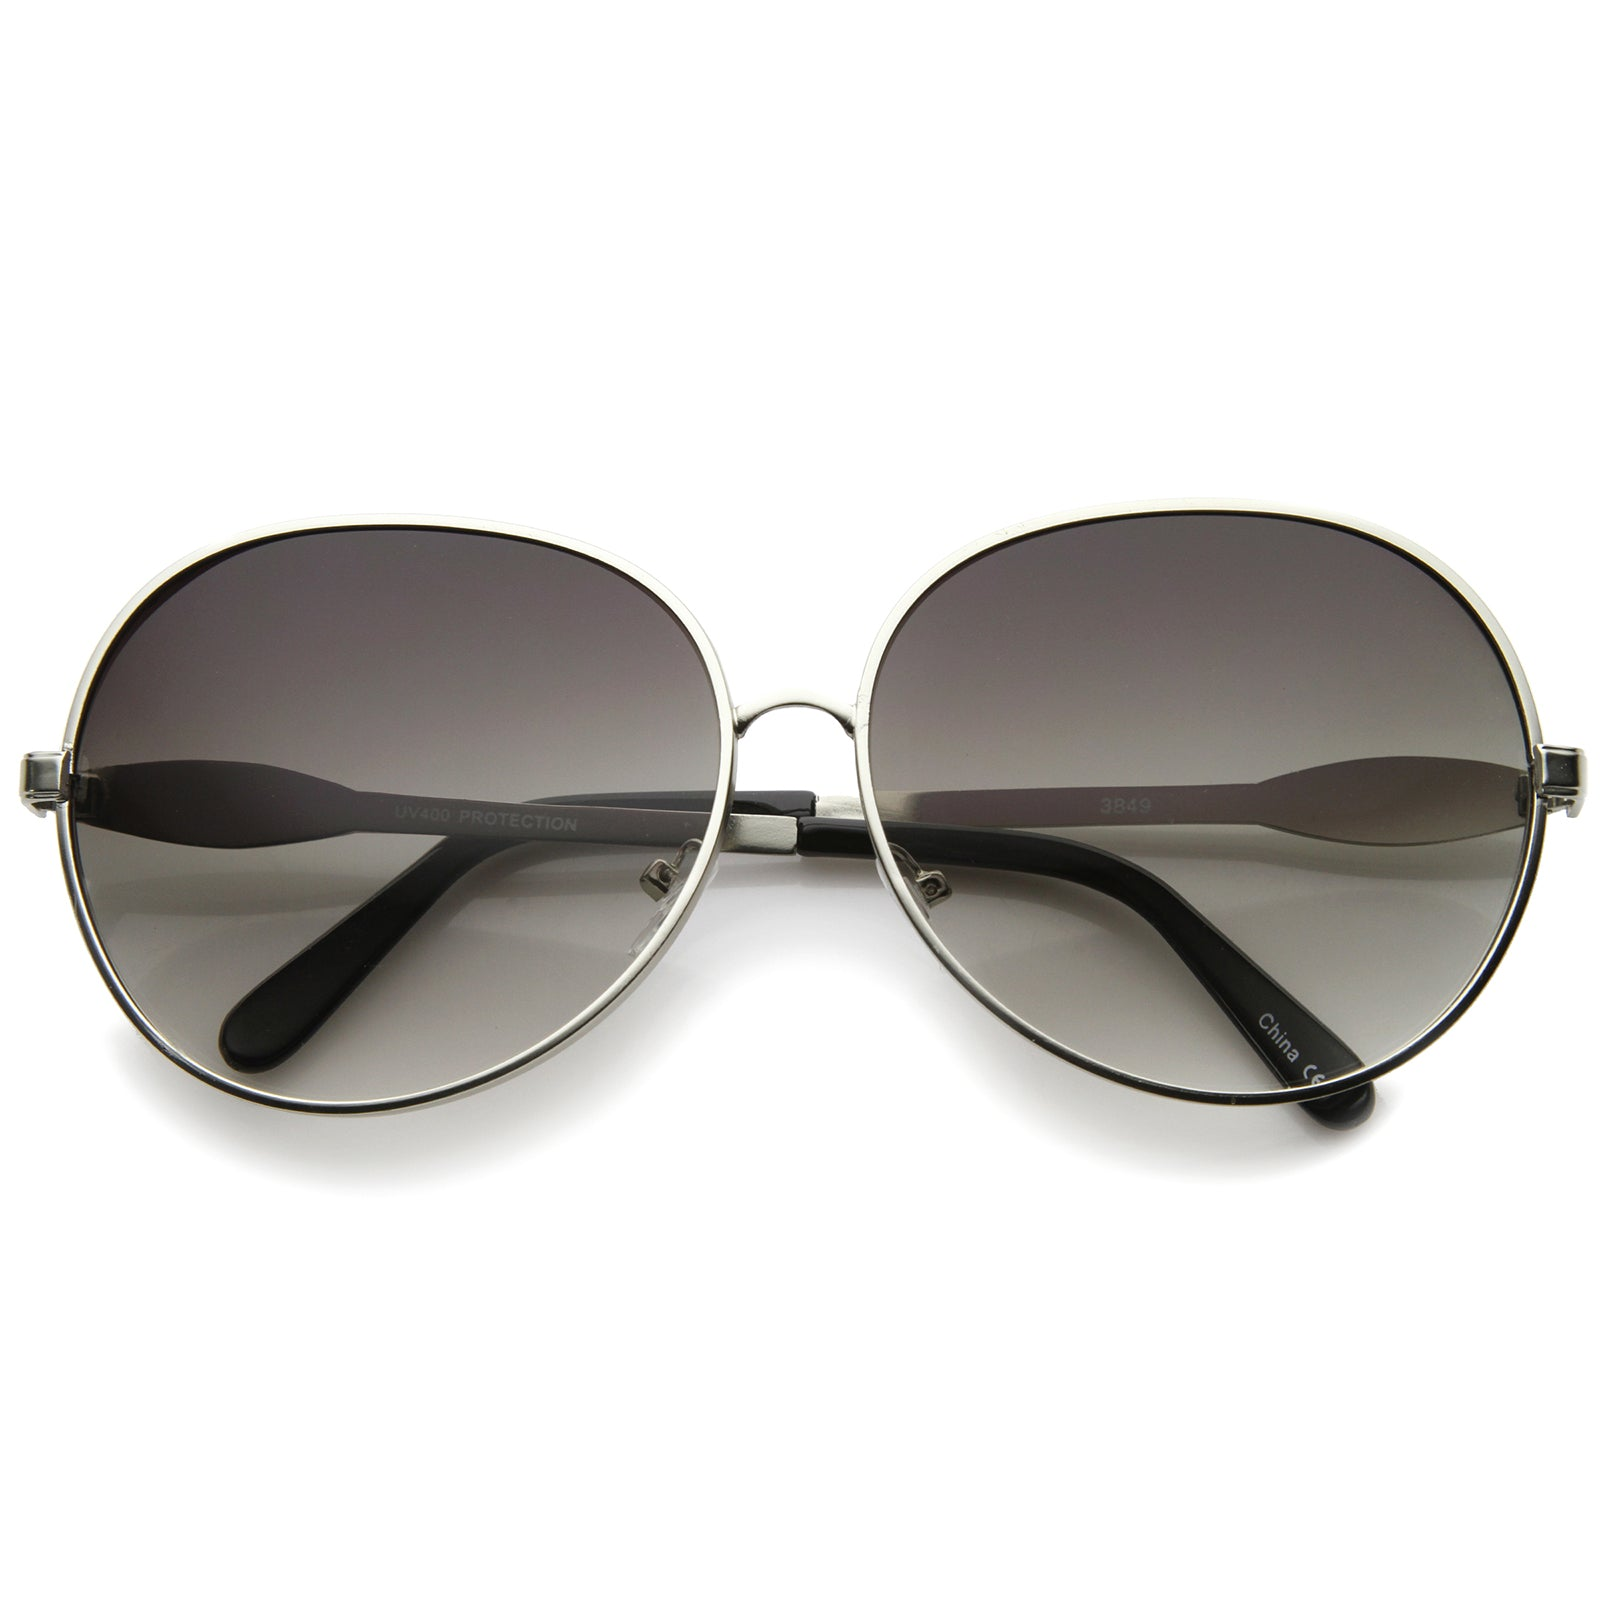 Womens Glam Full Metal Frame Oversized Round Sunglasses 63mm - sunglass.la - 5